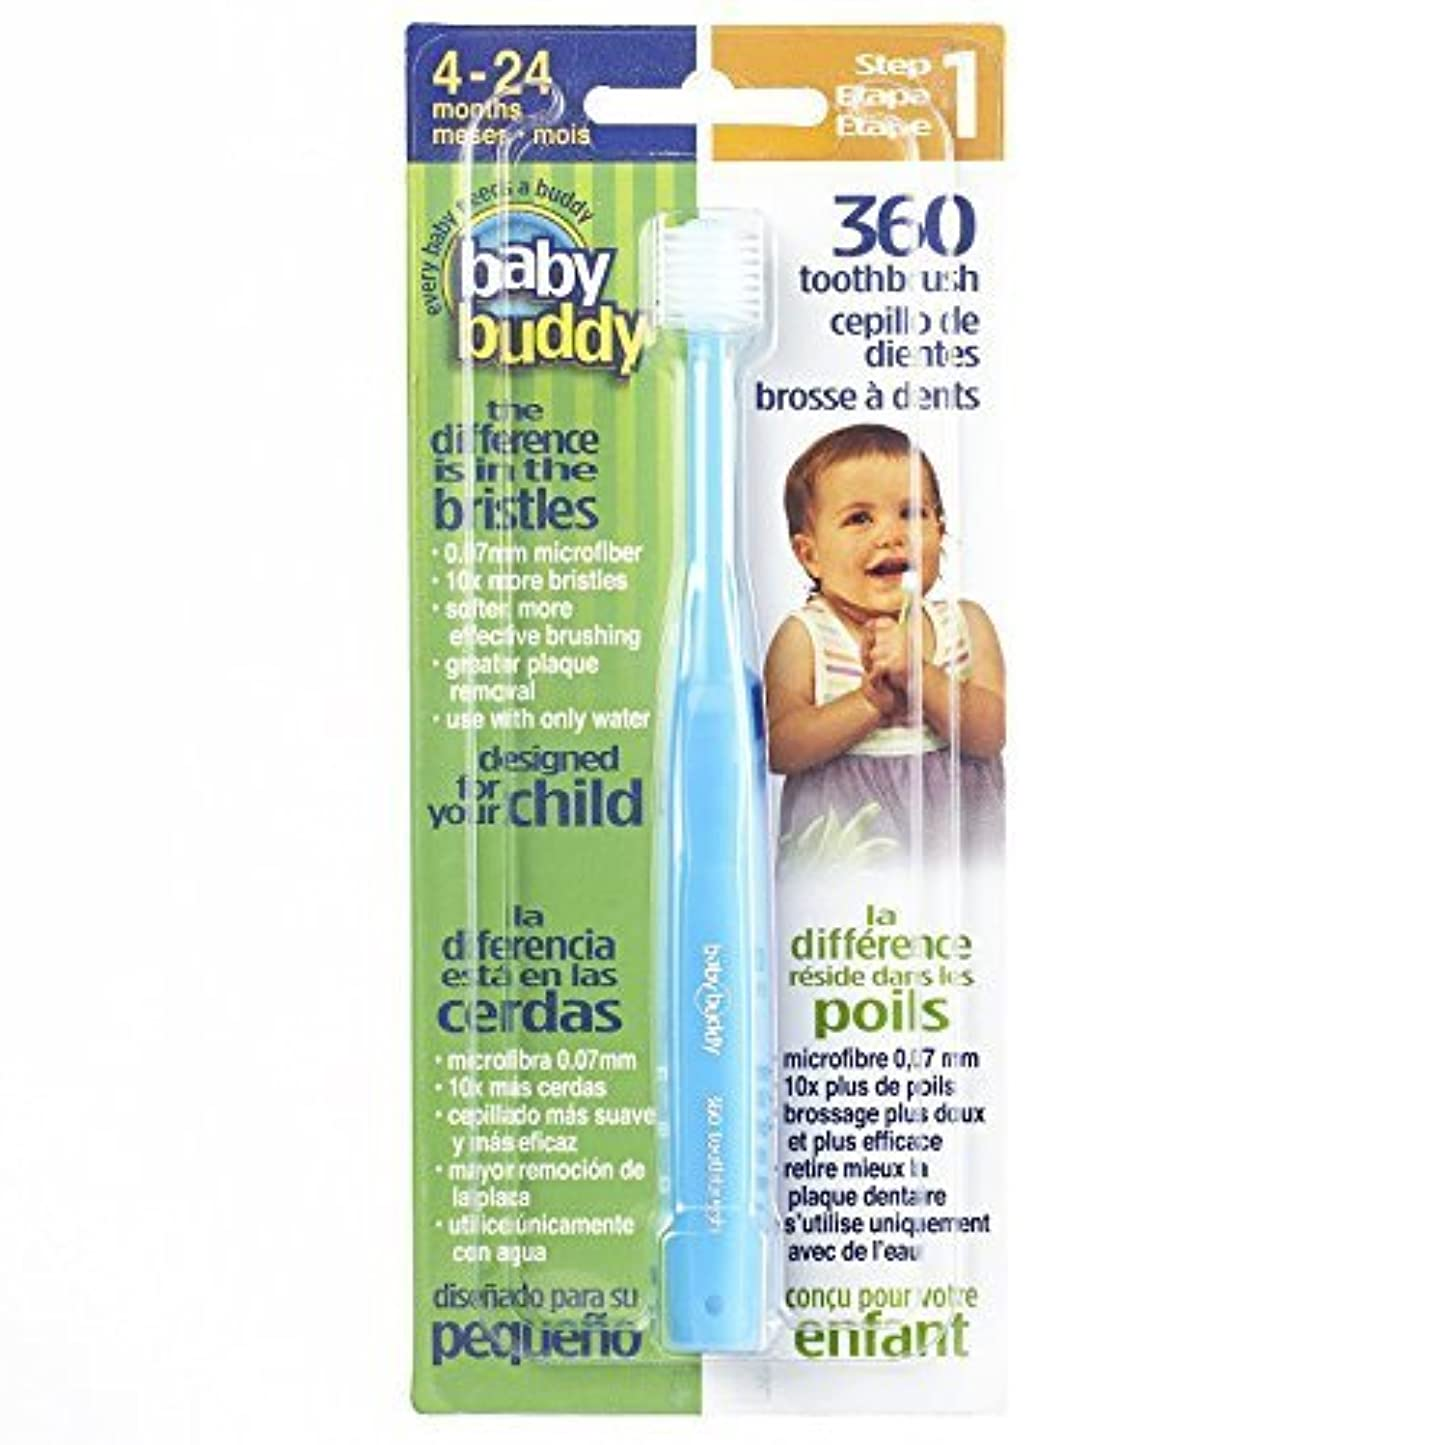 レガシー五十二年生Baby Buddy 360 Toothbrush Step 1, Blue by Baby Buddy [並行輸入品]